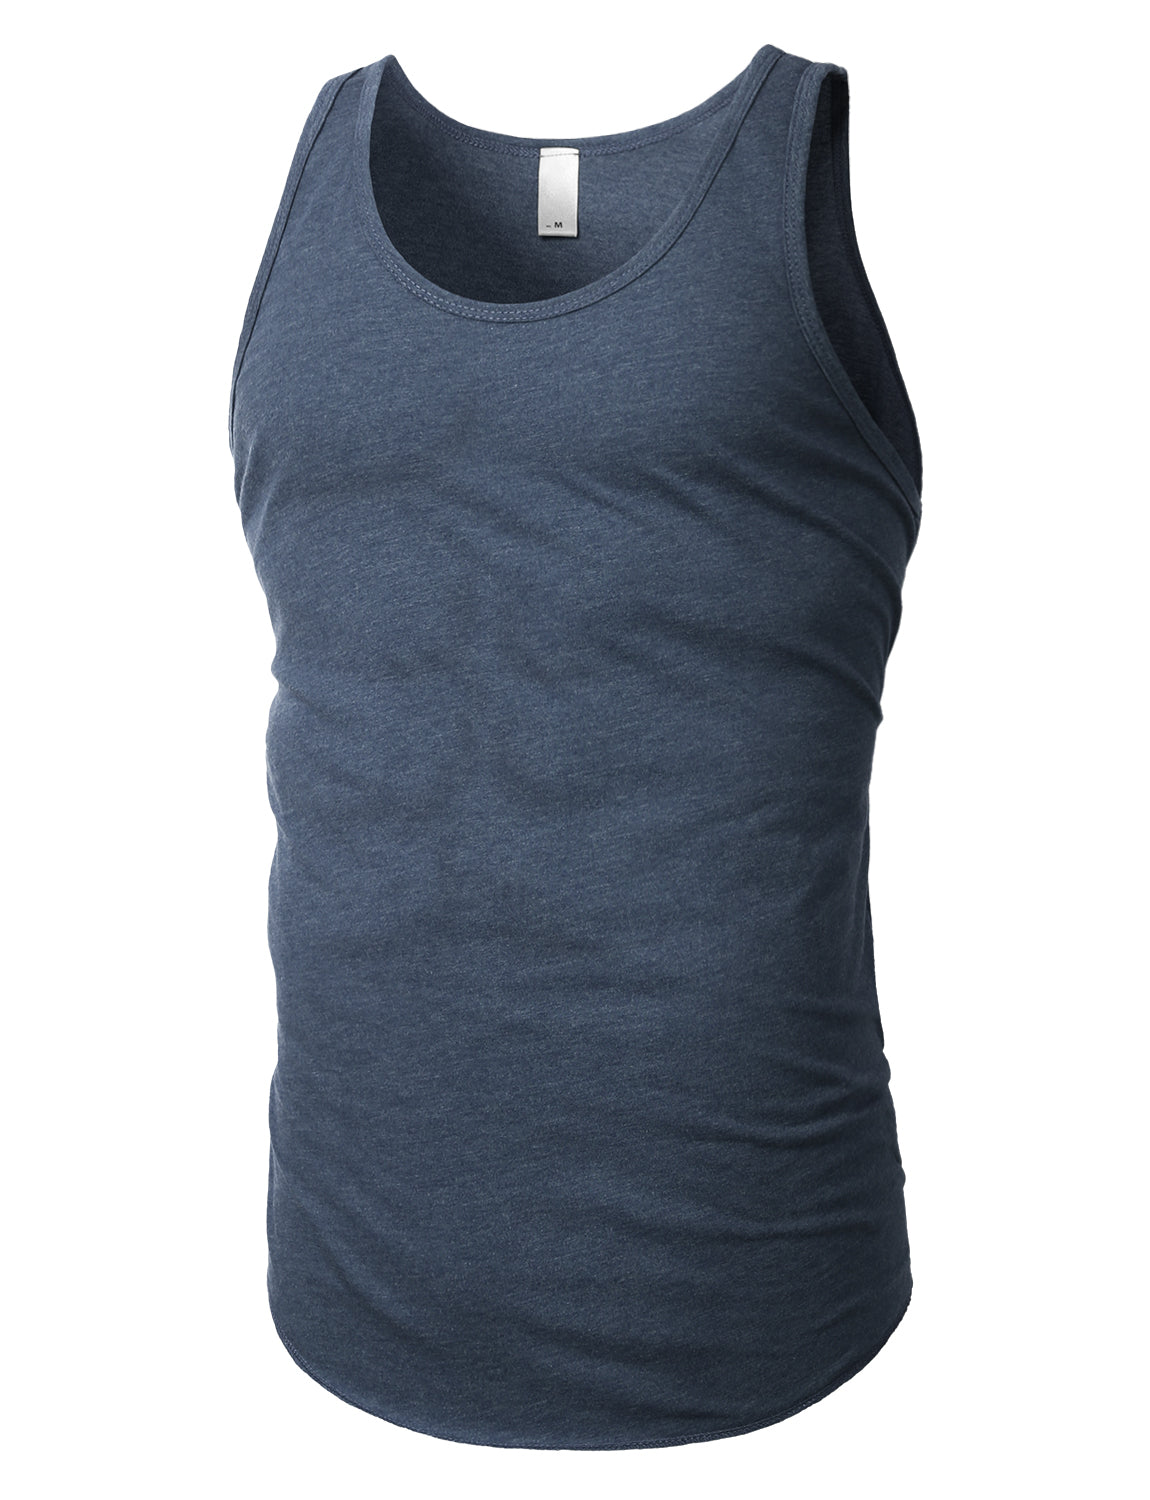 NAVY Basic Solid Muscle Tank Top Shirts - URBANCREWS